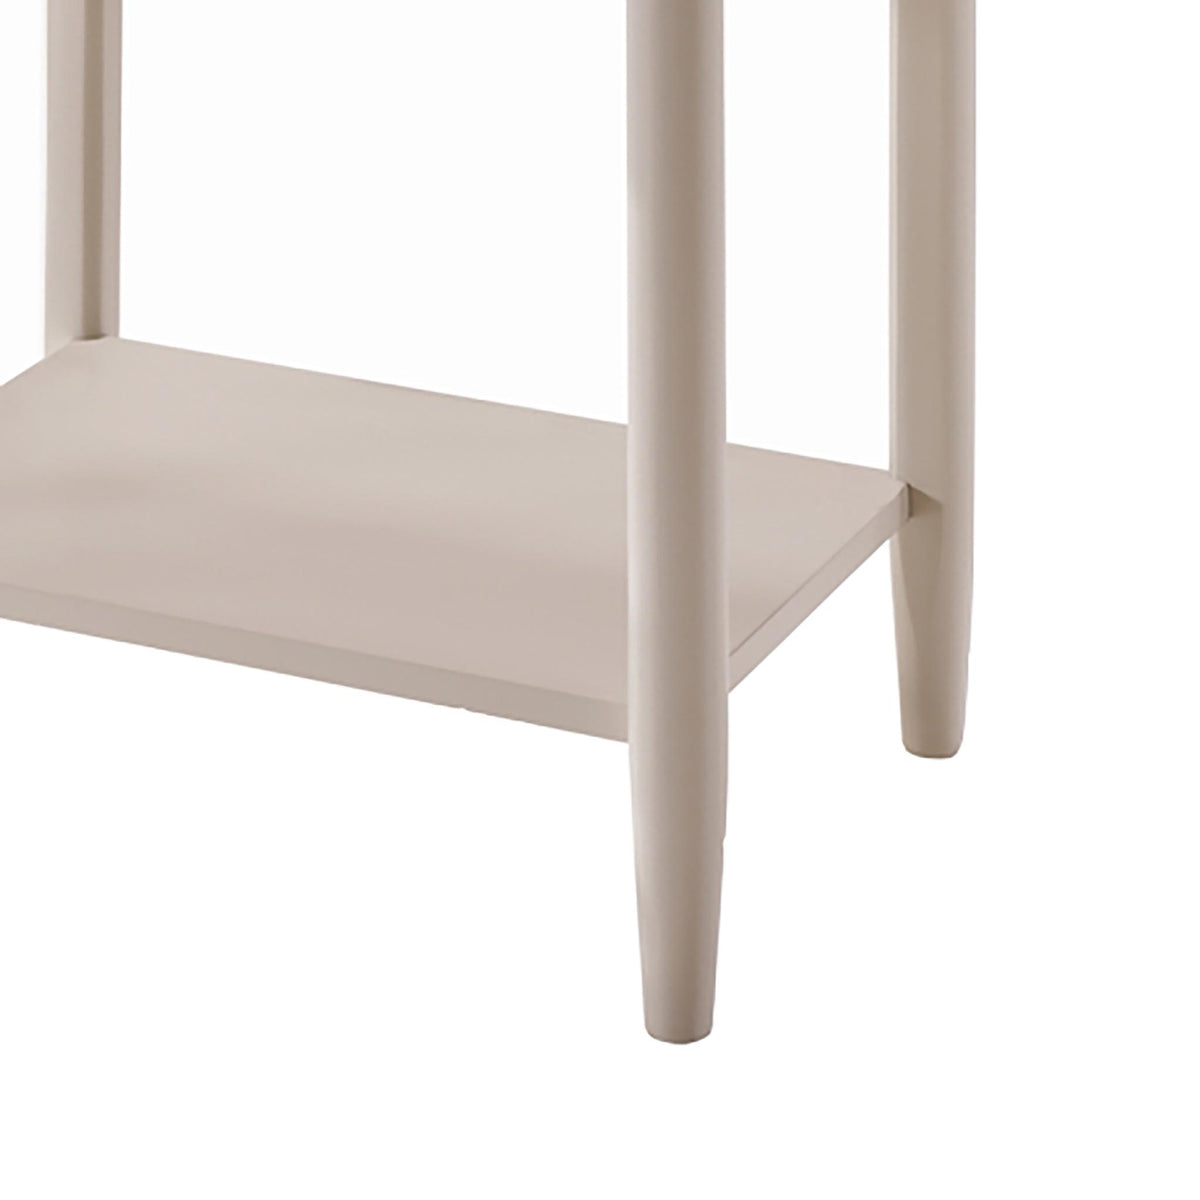 Altona End Table - Close Up of Lower Shelf and Legs